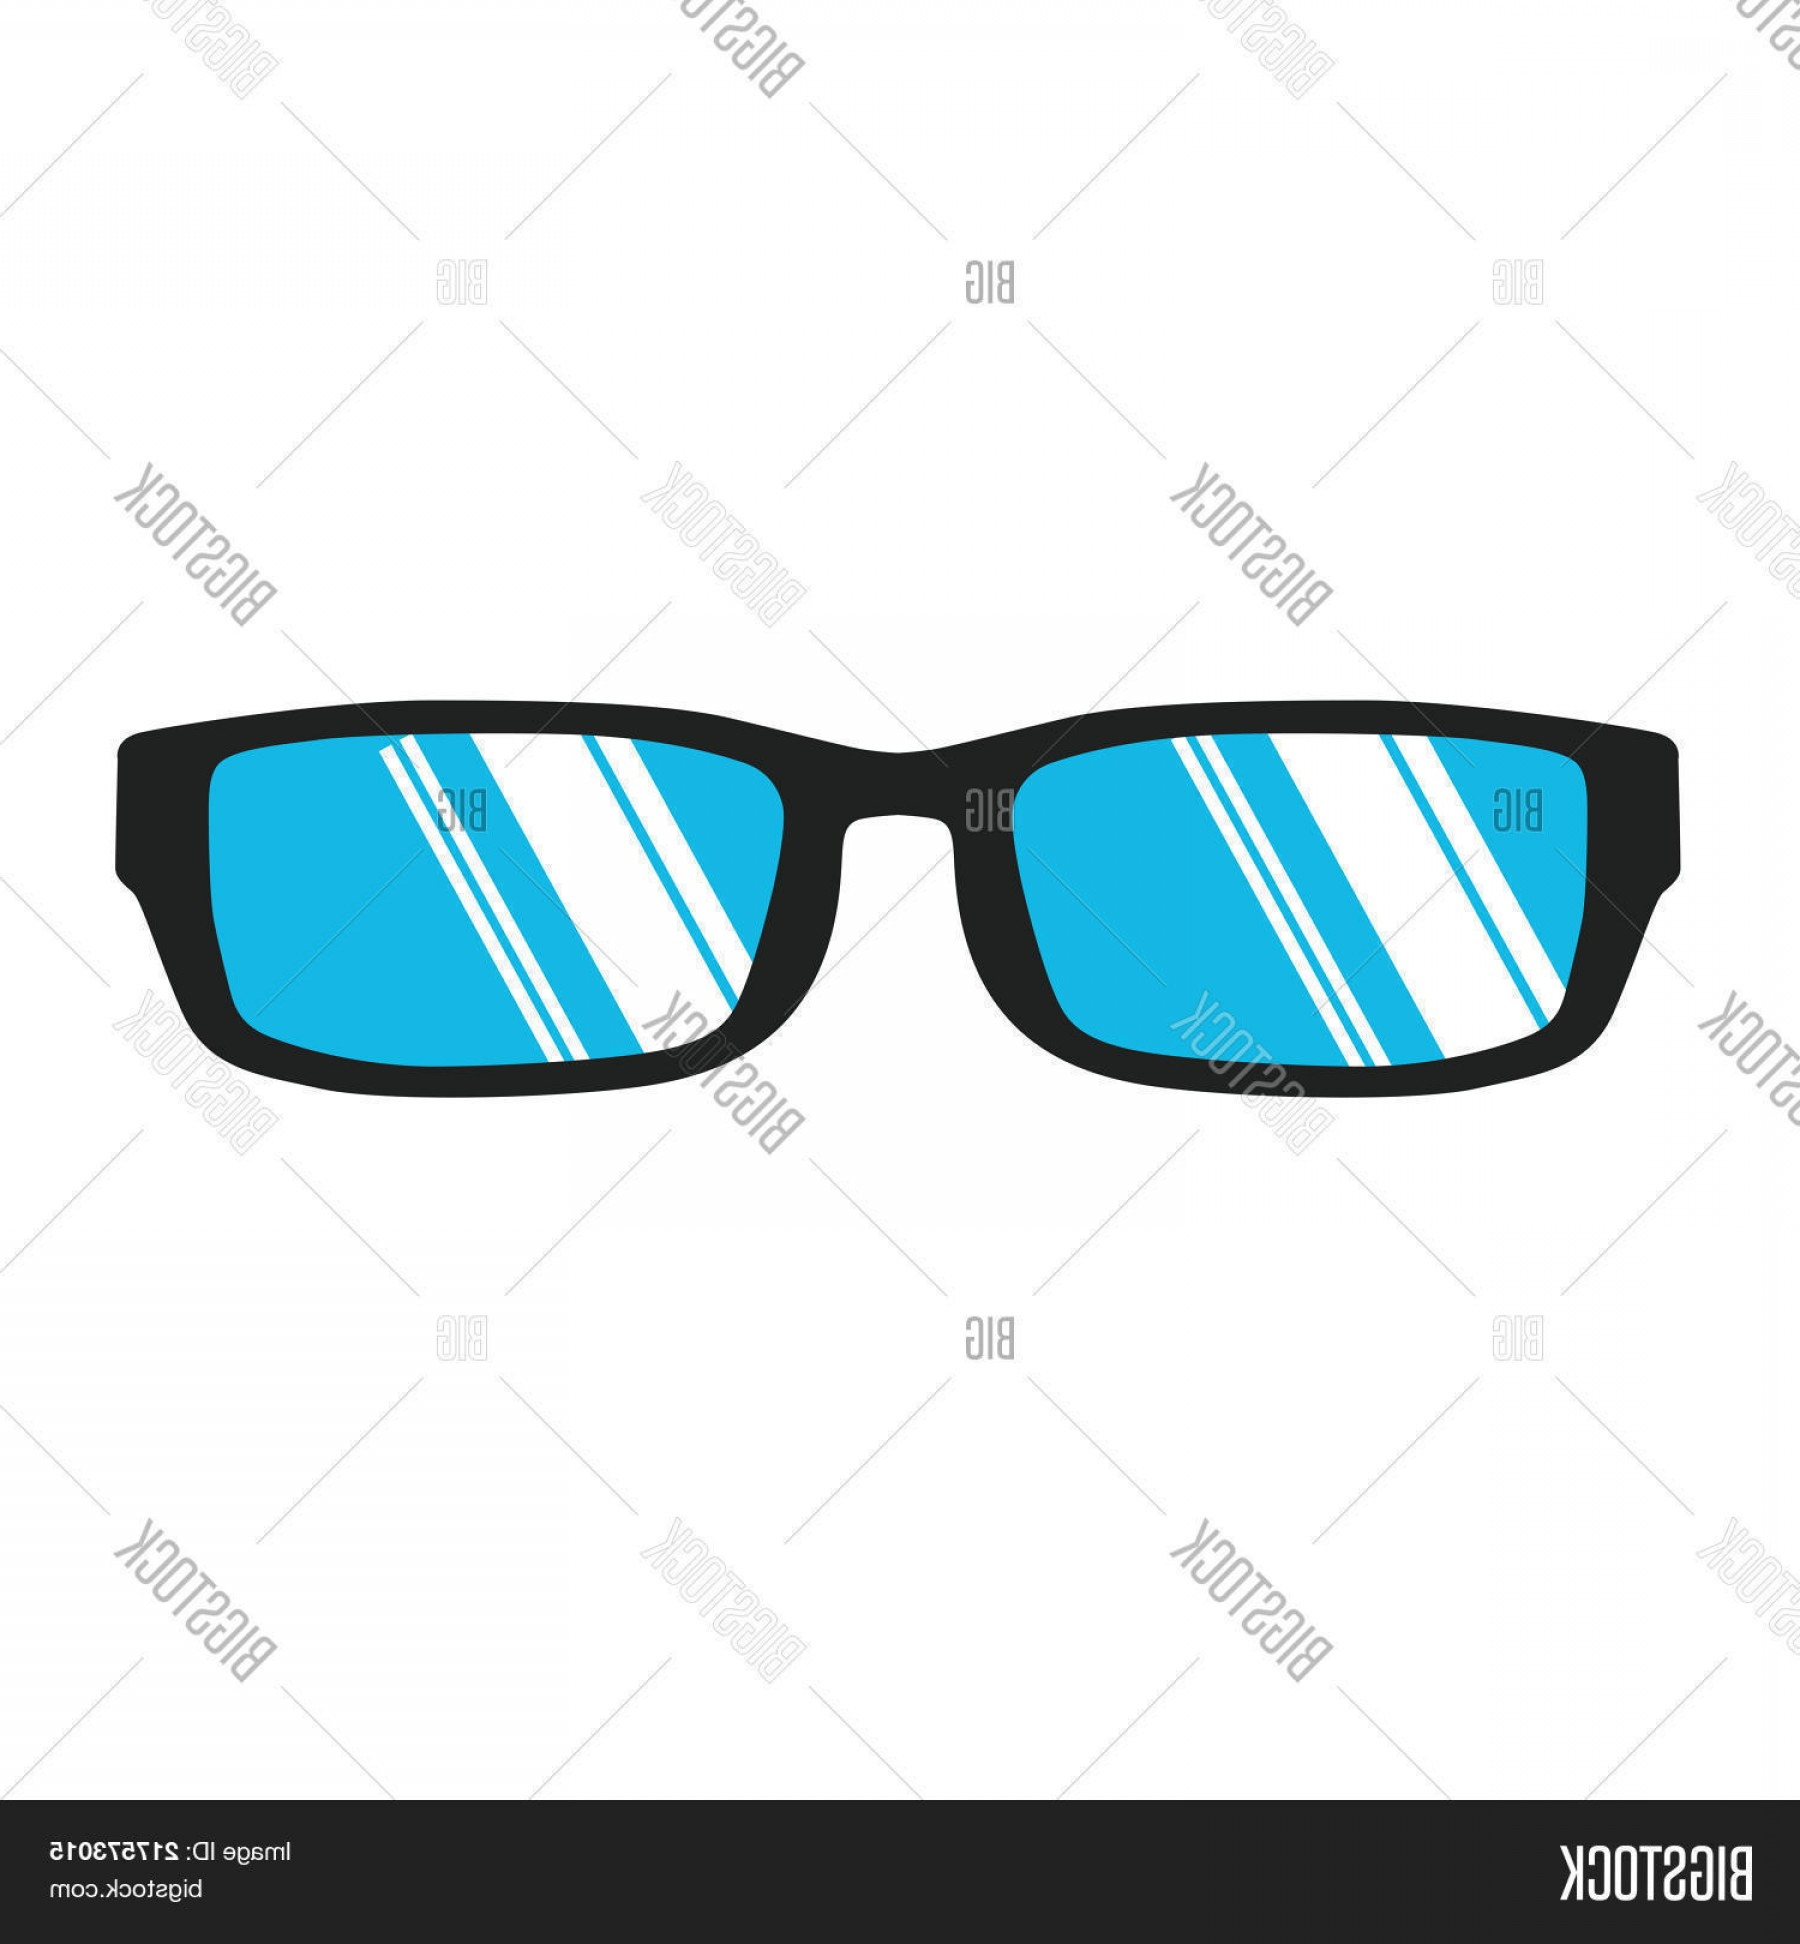 Reading Glasses For Men Vector: Stock Vector Glasses Reading Icon Vector Illustration Isolated Eye Black Style Vision Lens White Fashion Optical Eyeglasses Frame